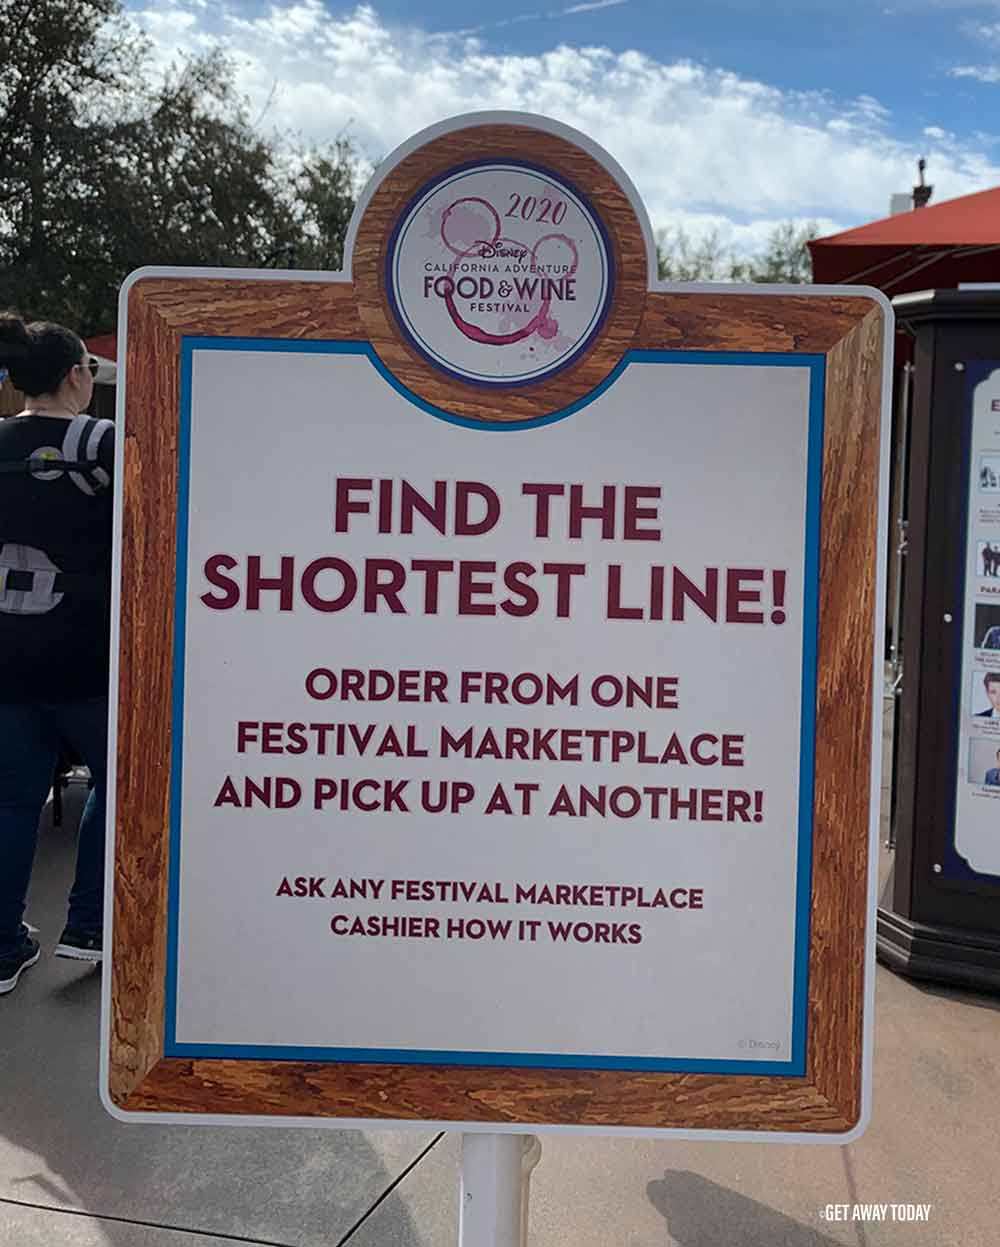 Disneyland Food and Wine Festival Order from One Place sign